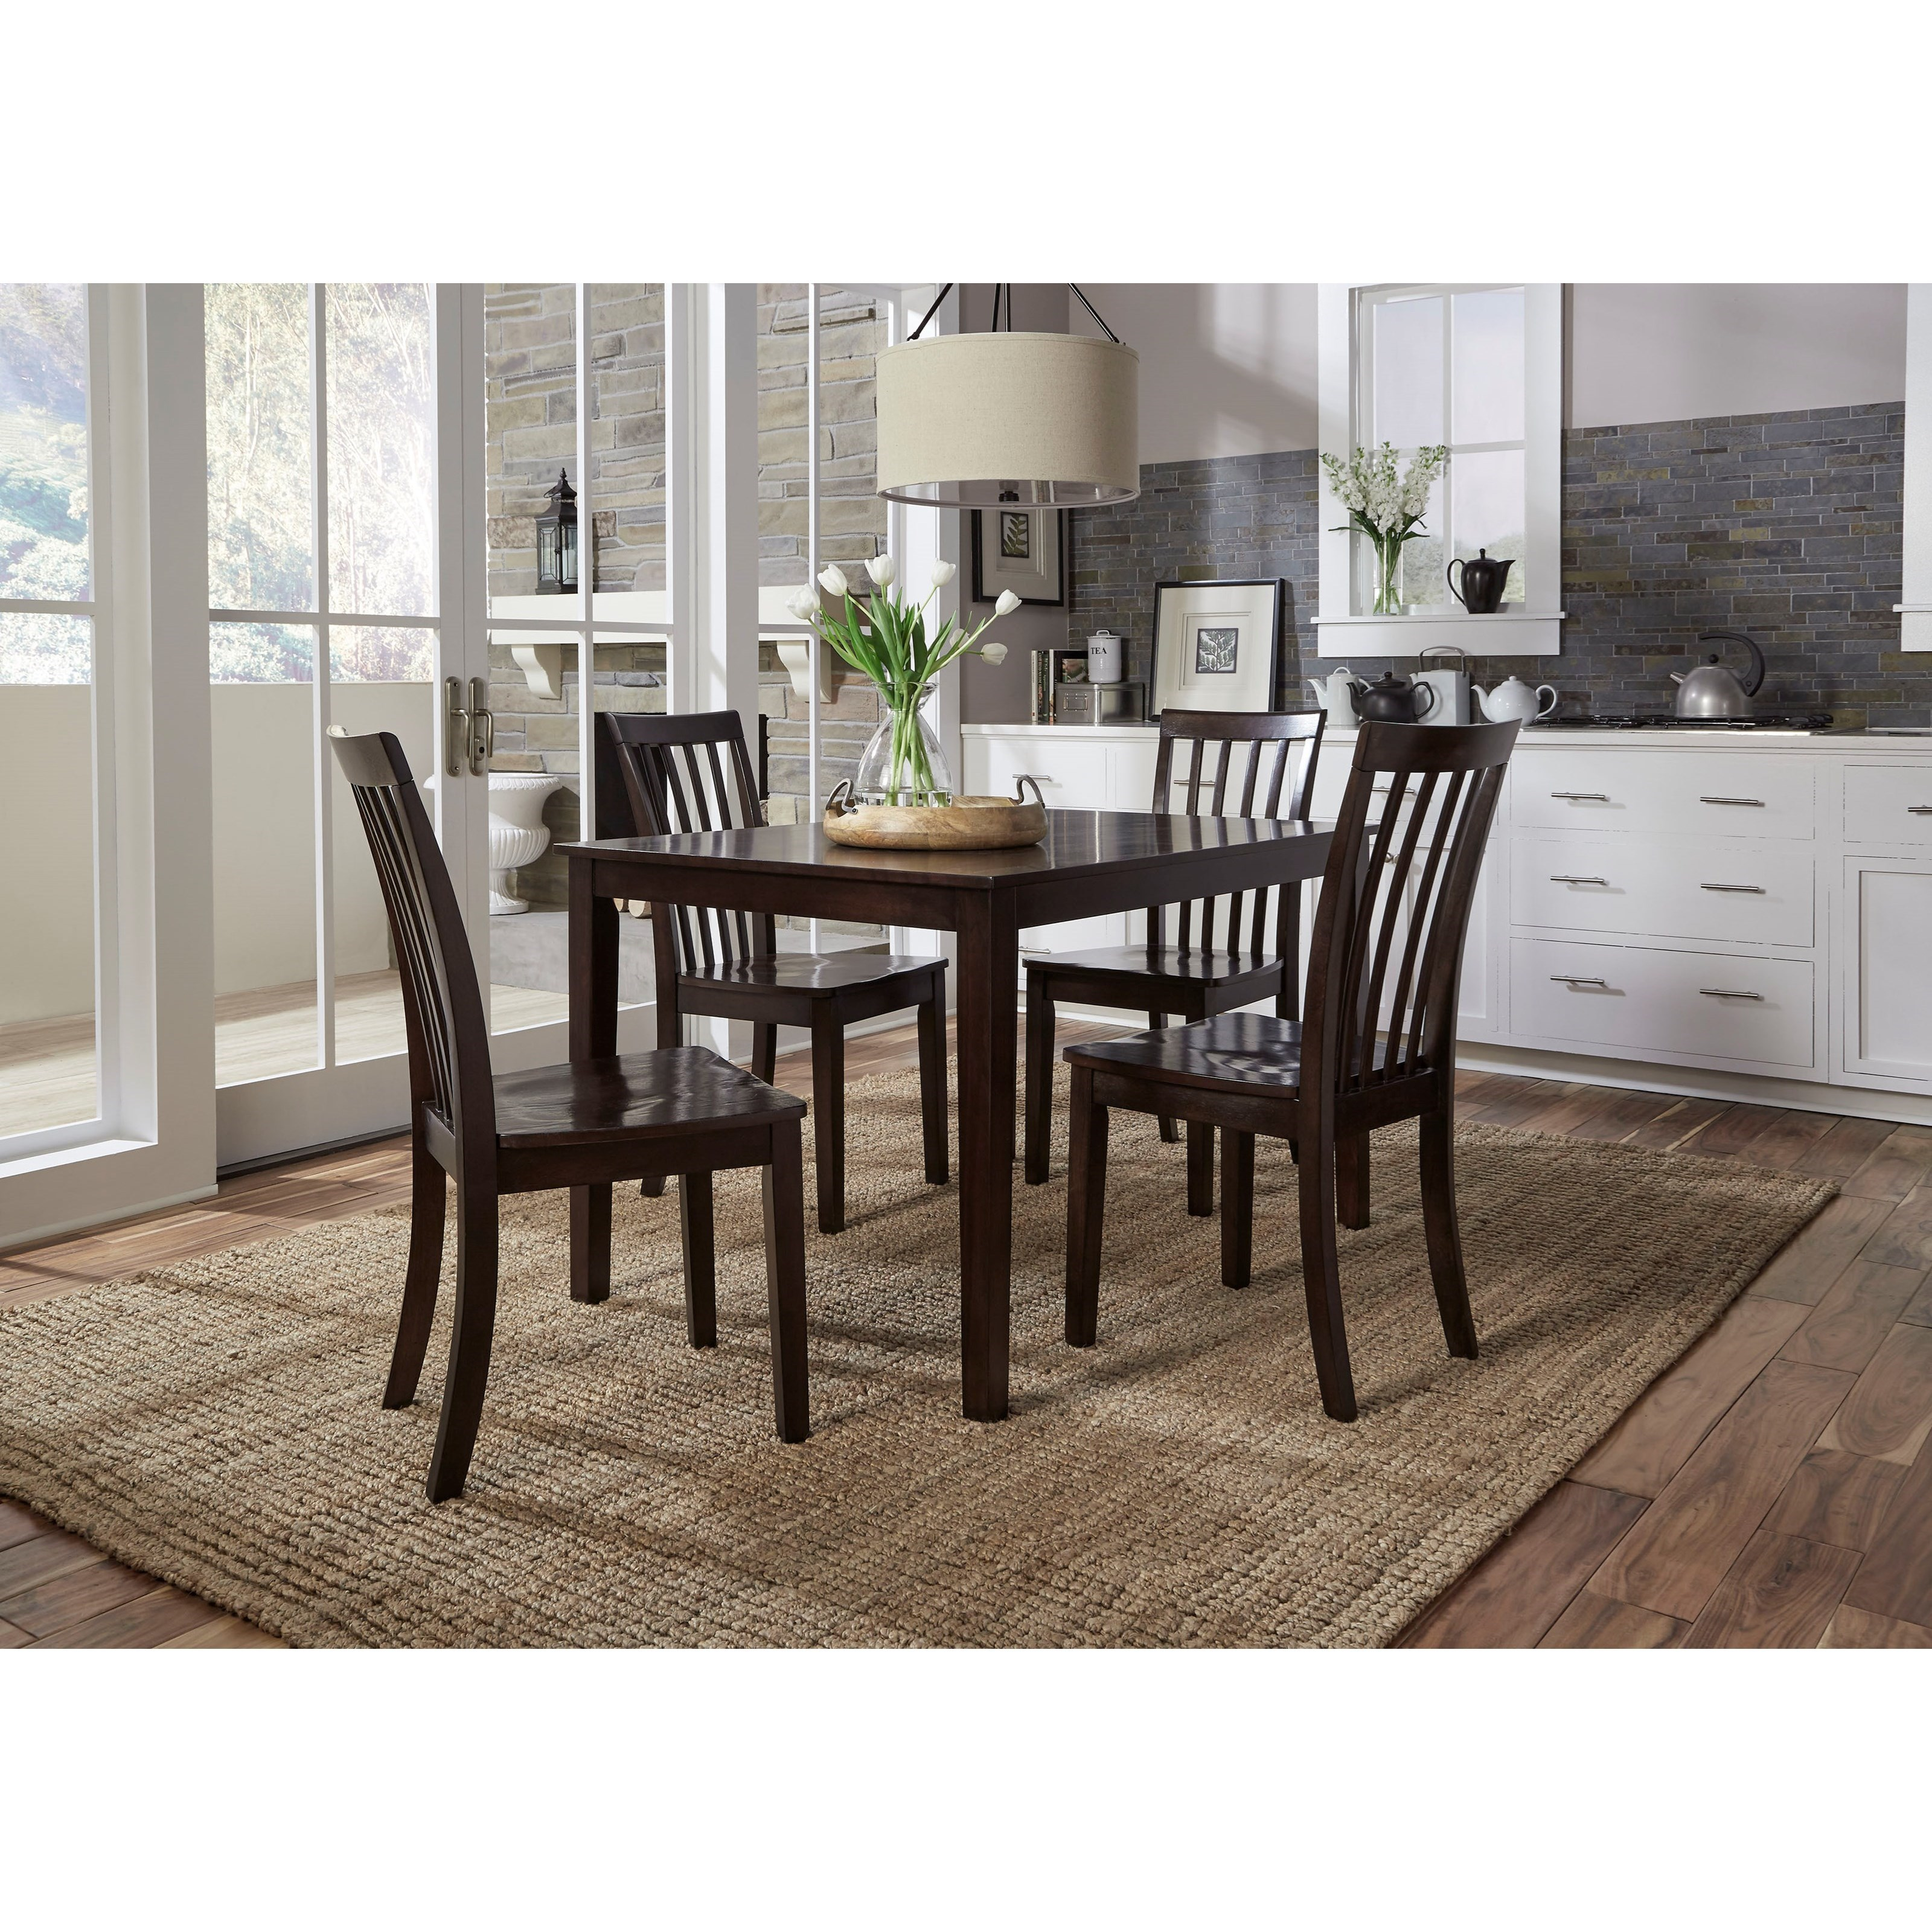 Casual Dining Tables And Chairs: Standard Furniture Stanton Casual Dining Table With Four